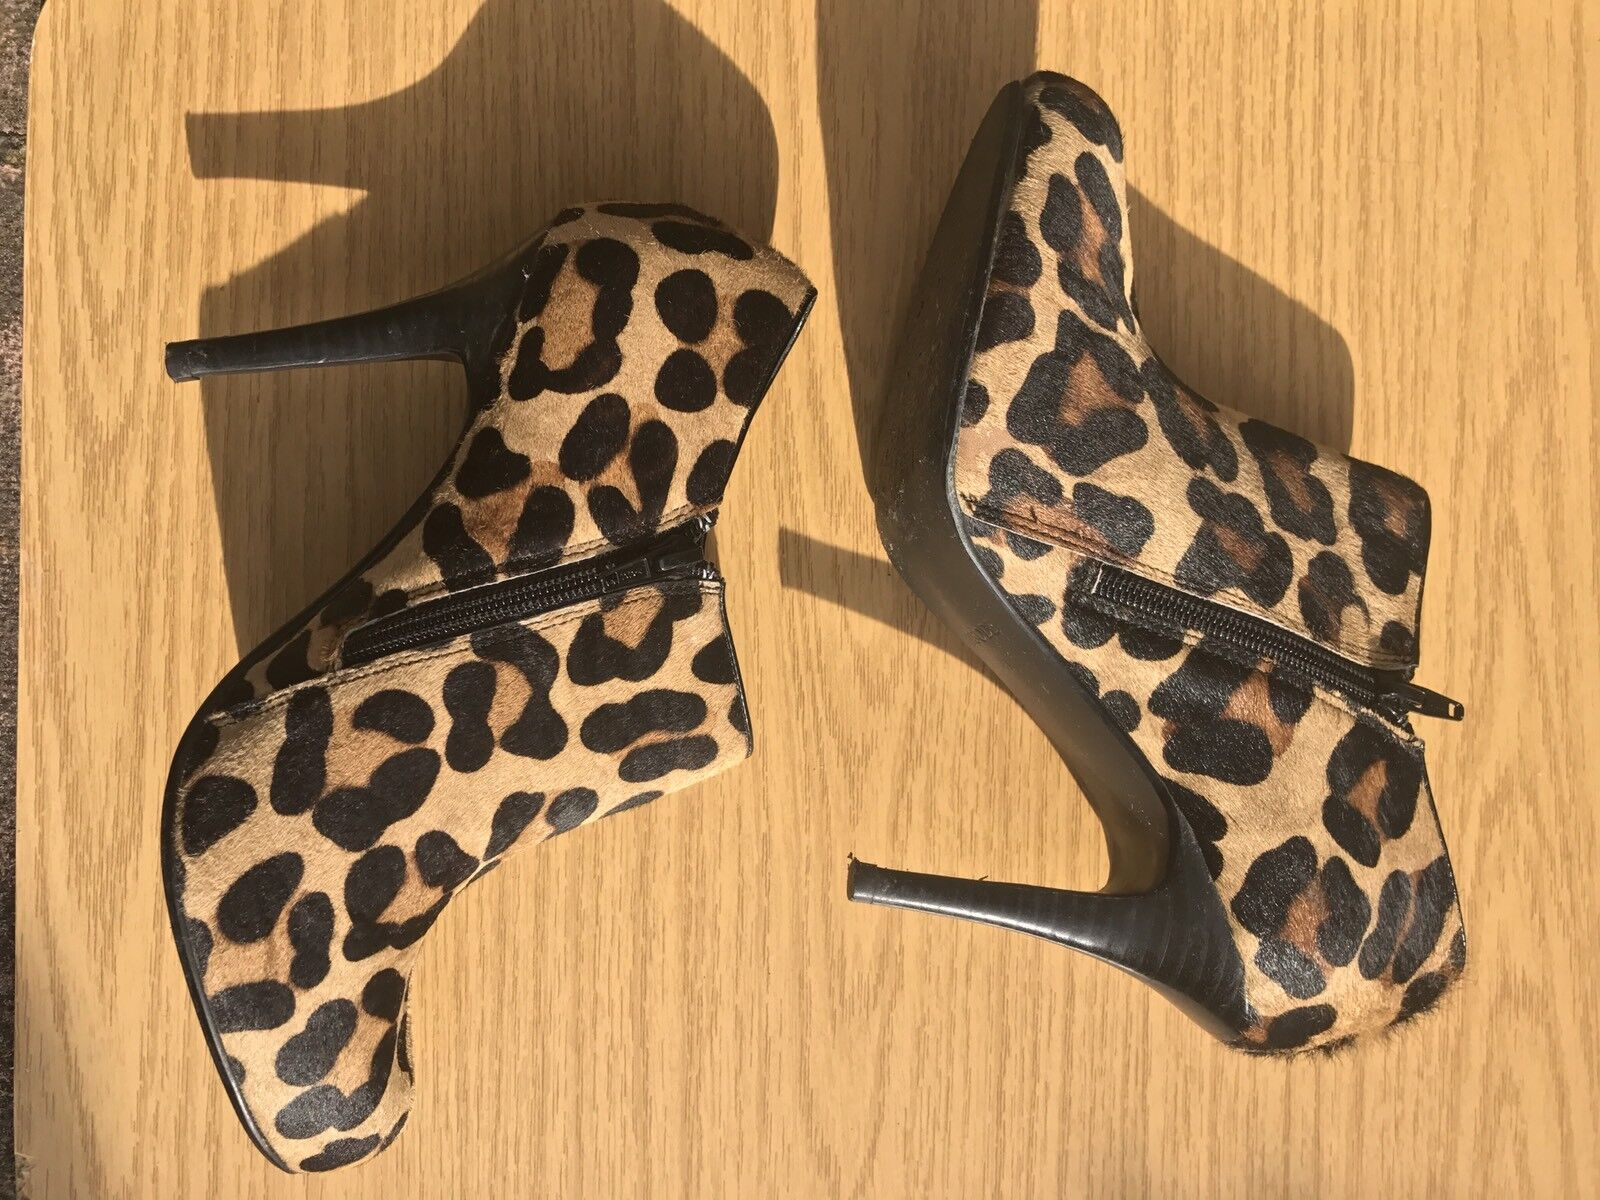 EPISODE HOUSE LEOPARD OF FRASER LEOPARD HOUSE ANIMAL PRINT LEATHER ANKLE Stiefel BOOTIES 8 10 41 dffa5c